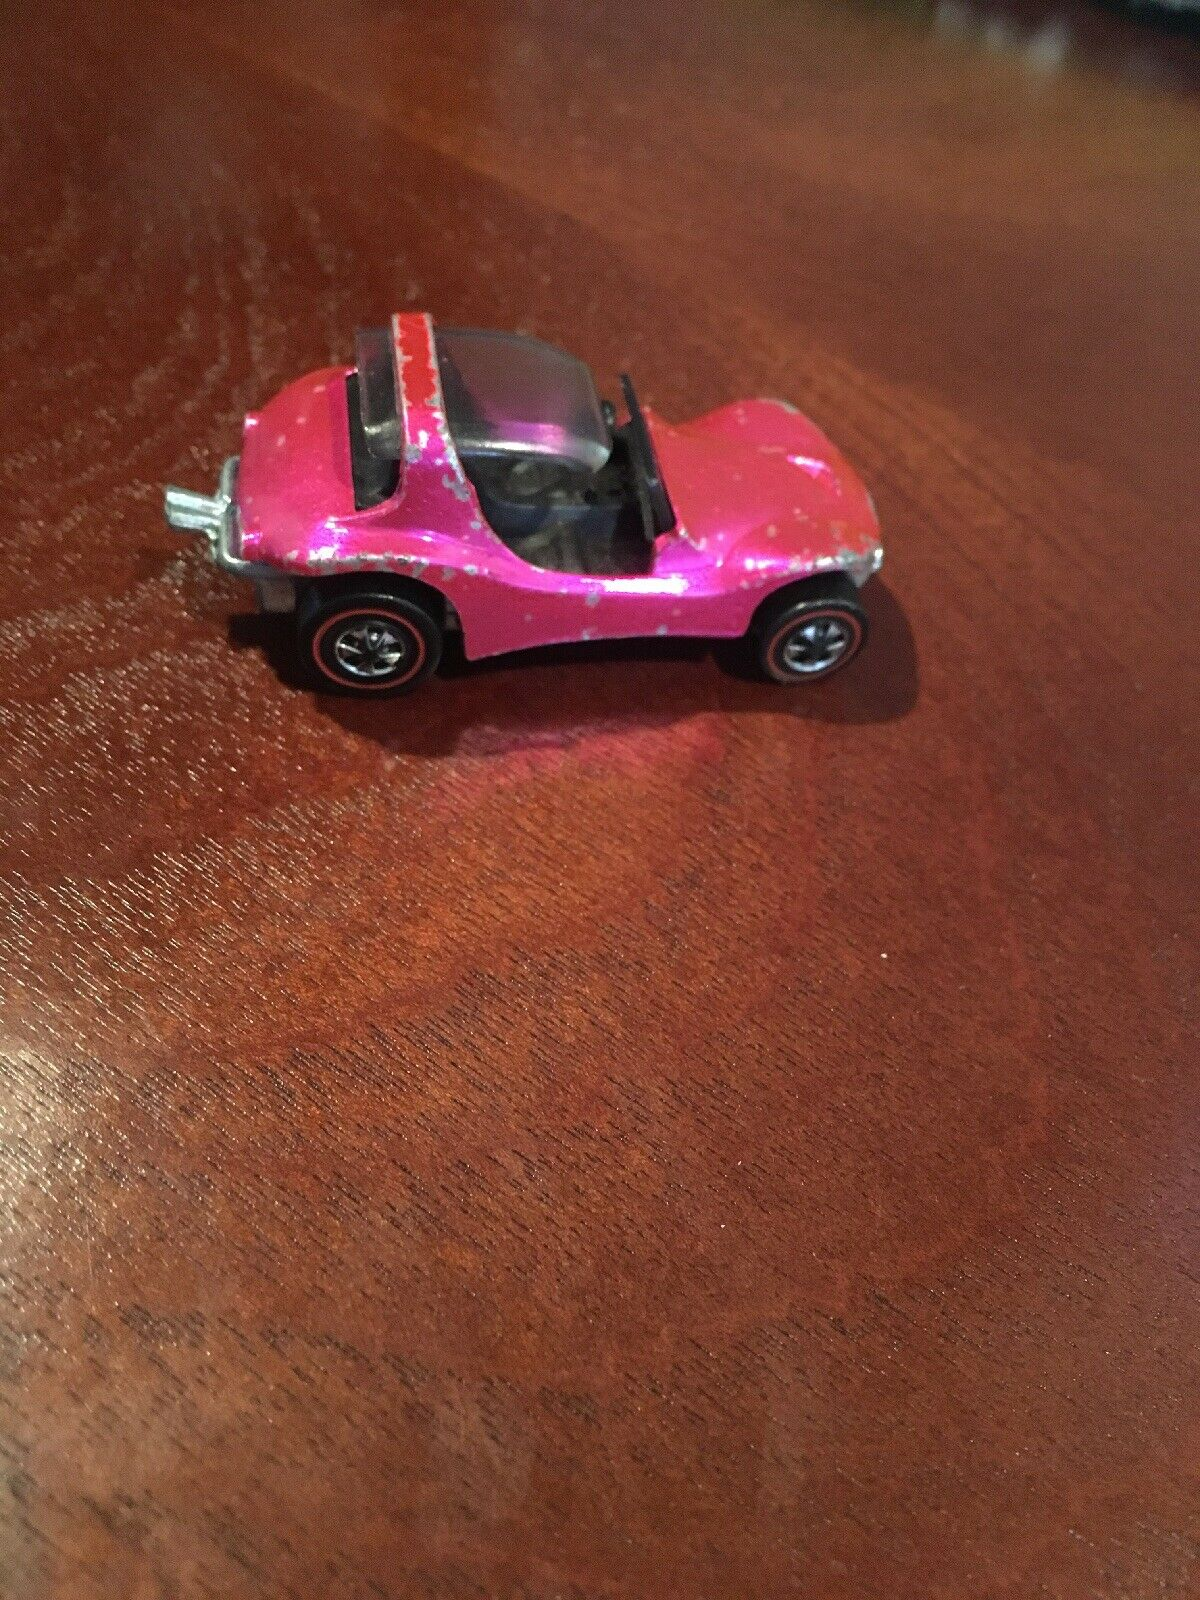 1969 HOT WHEELS sable rose crabe vintage très bon état rougeline